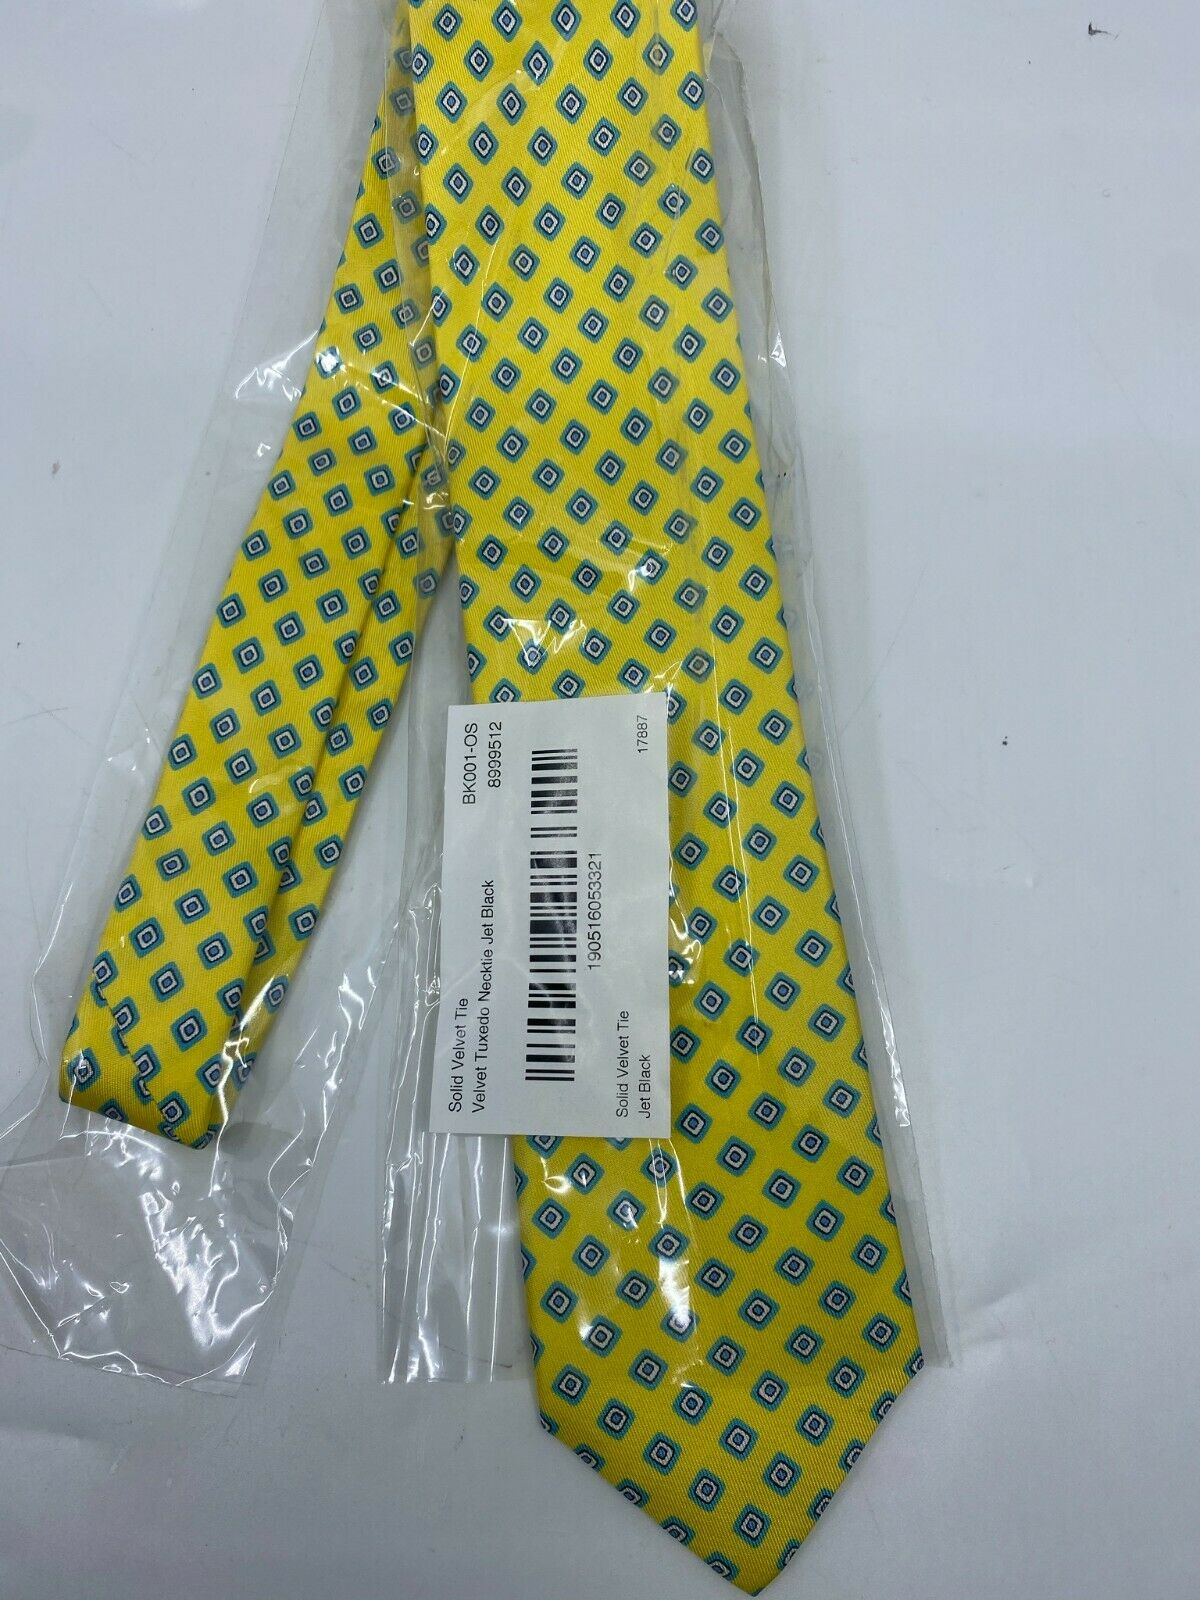 NWOT BONOBOS Neck Tie Yellow Diamond Great for Spring MSRP 98